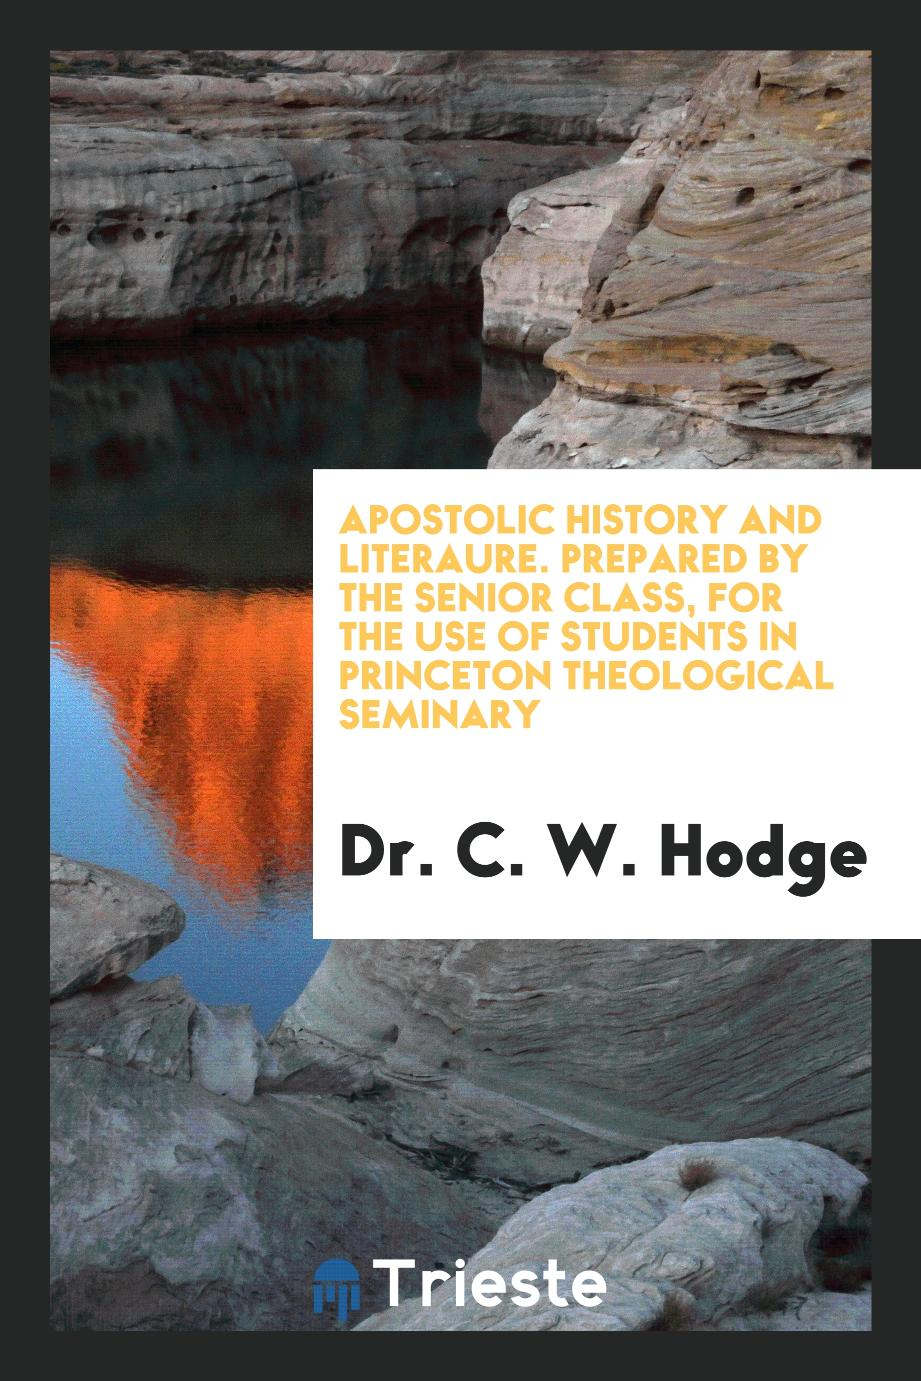 Apostolic History and Literaure. Prepared by the Senior Class, for the Use of Students in Princeton Theological Seminary